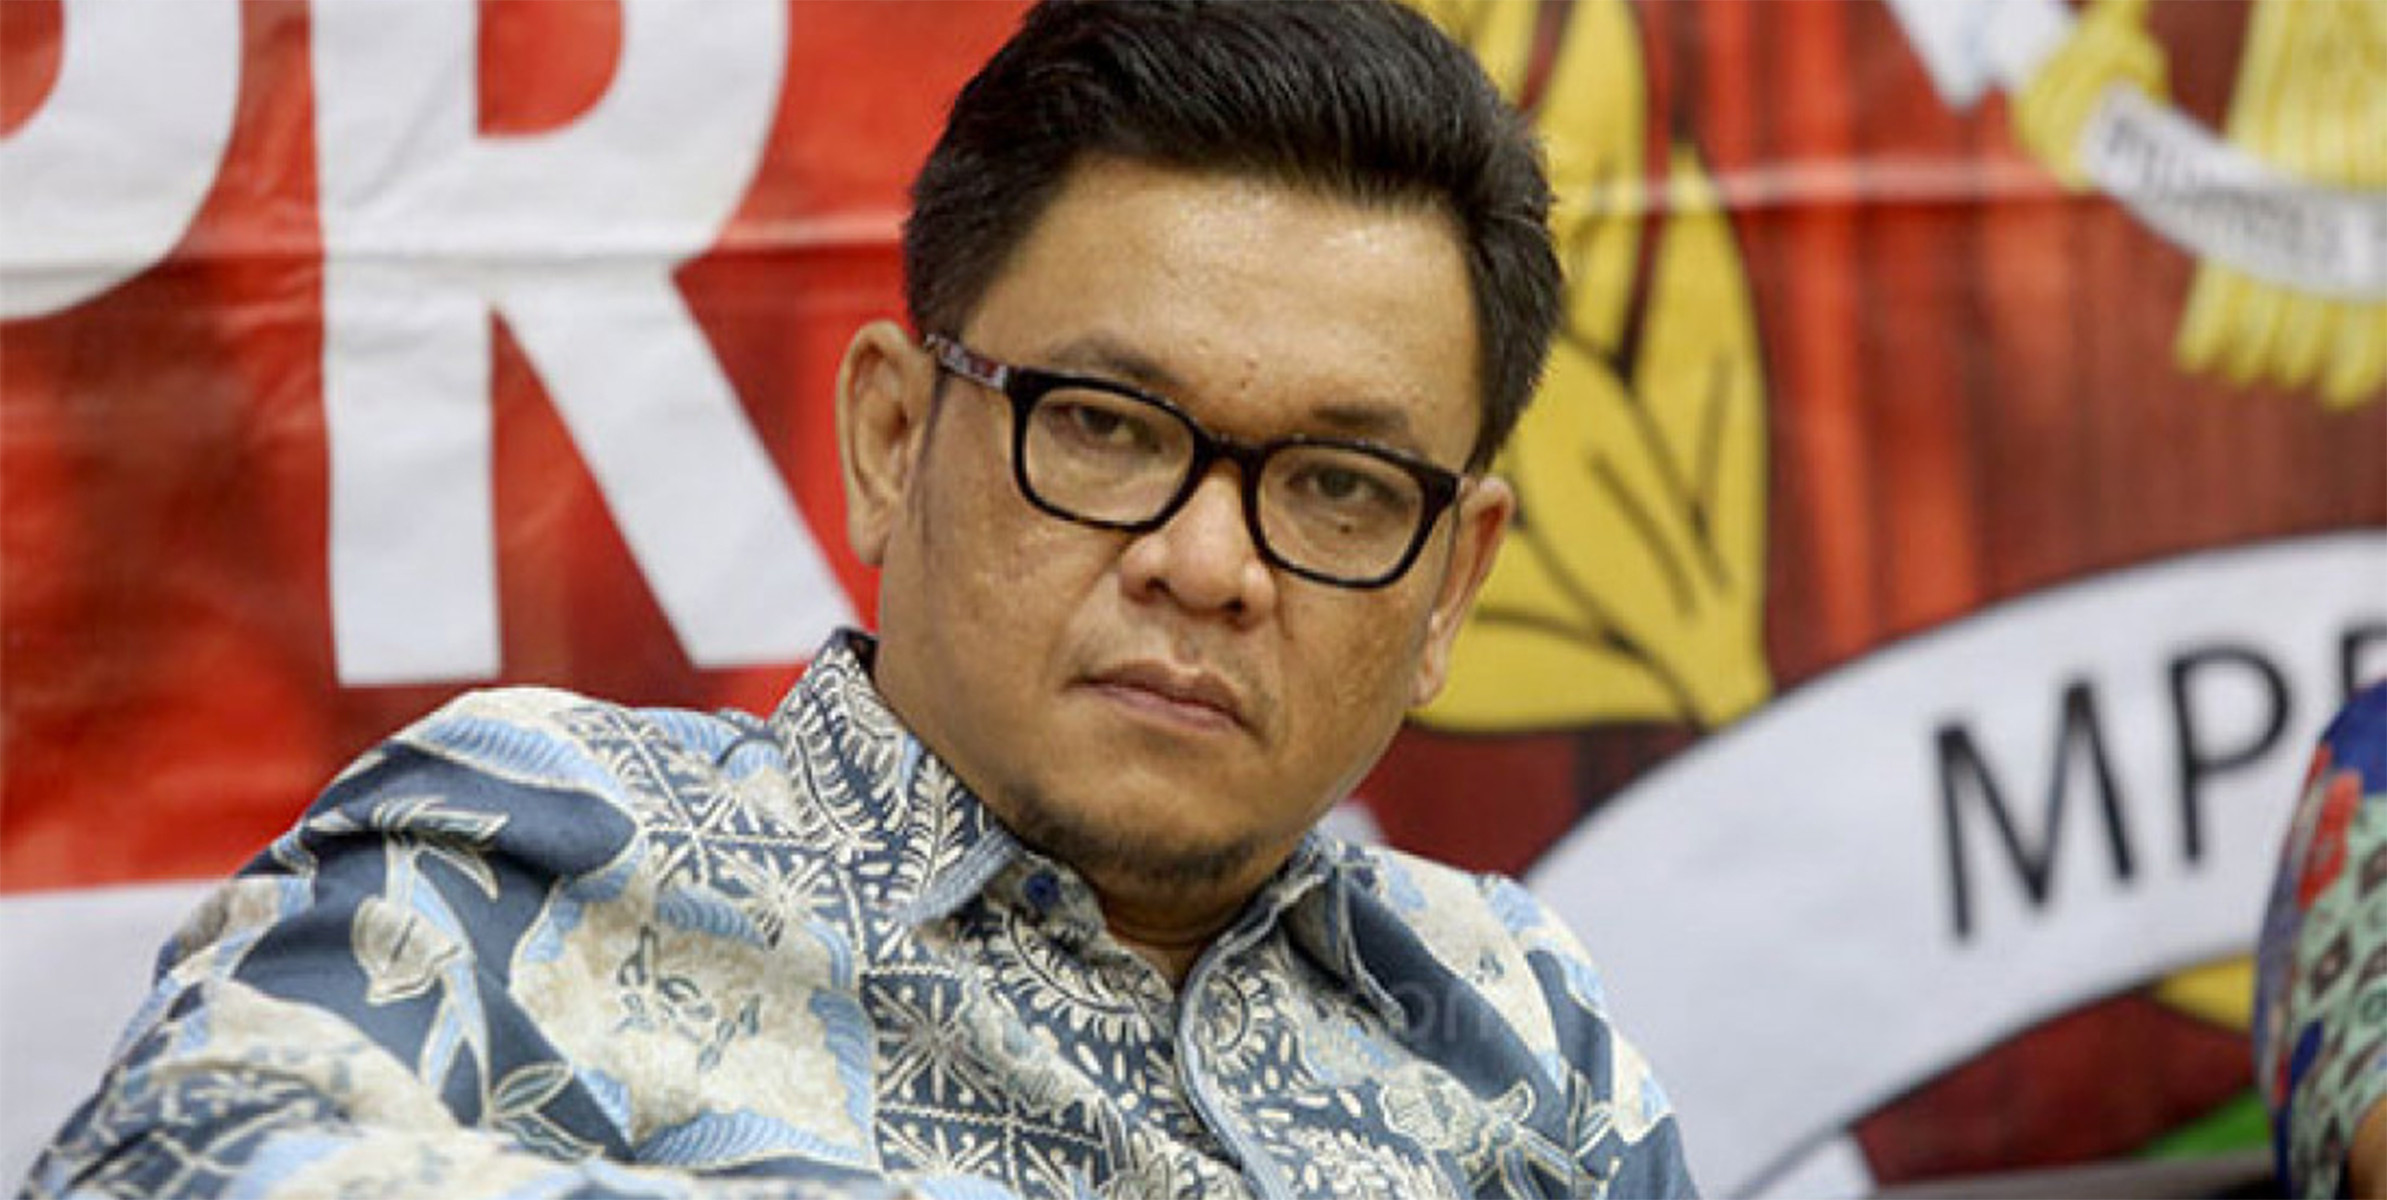 Ingin Miliki Kader Tangguh, Ace Hasan Pastikan Golkar Institute Gelar Executive Education For Young Political Leaders